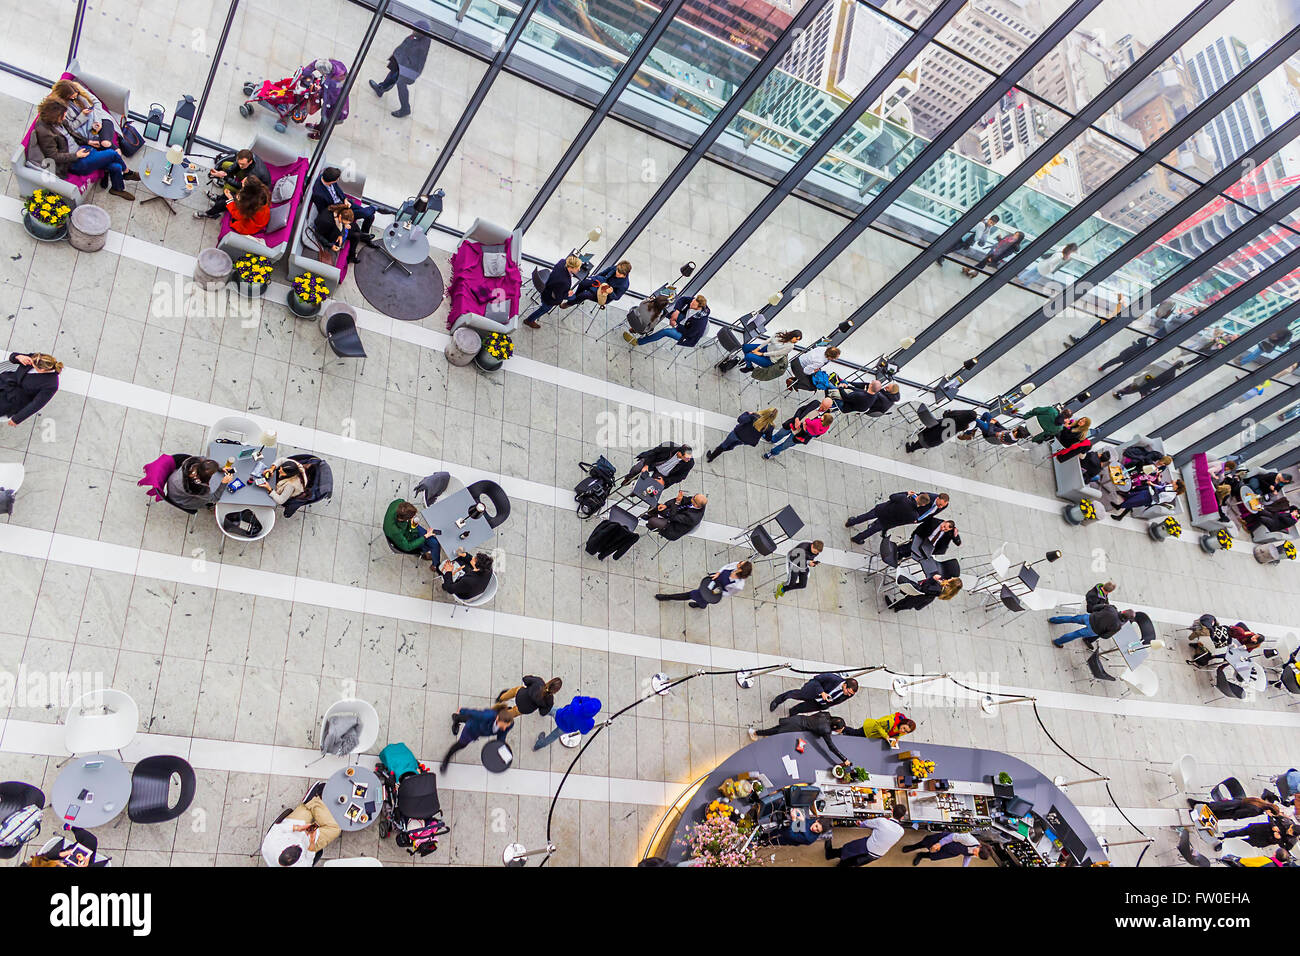 London, United Kingdom - March 23, 2016: Visitors are relaxing in the bar restaurant area of the Sky Garden. - Stock Image